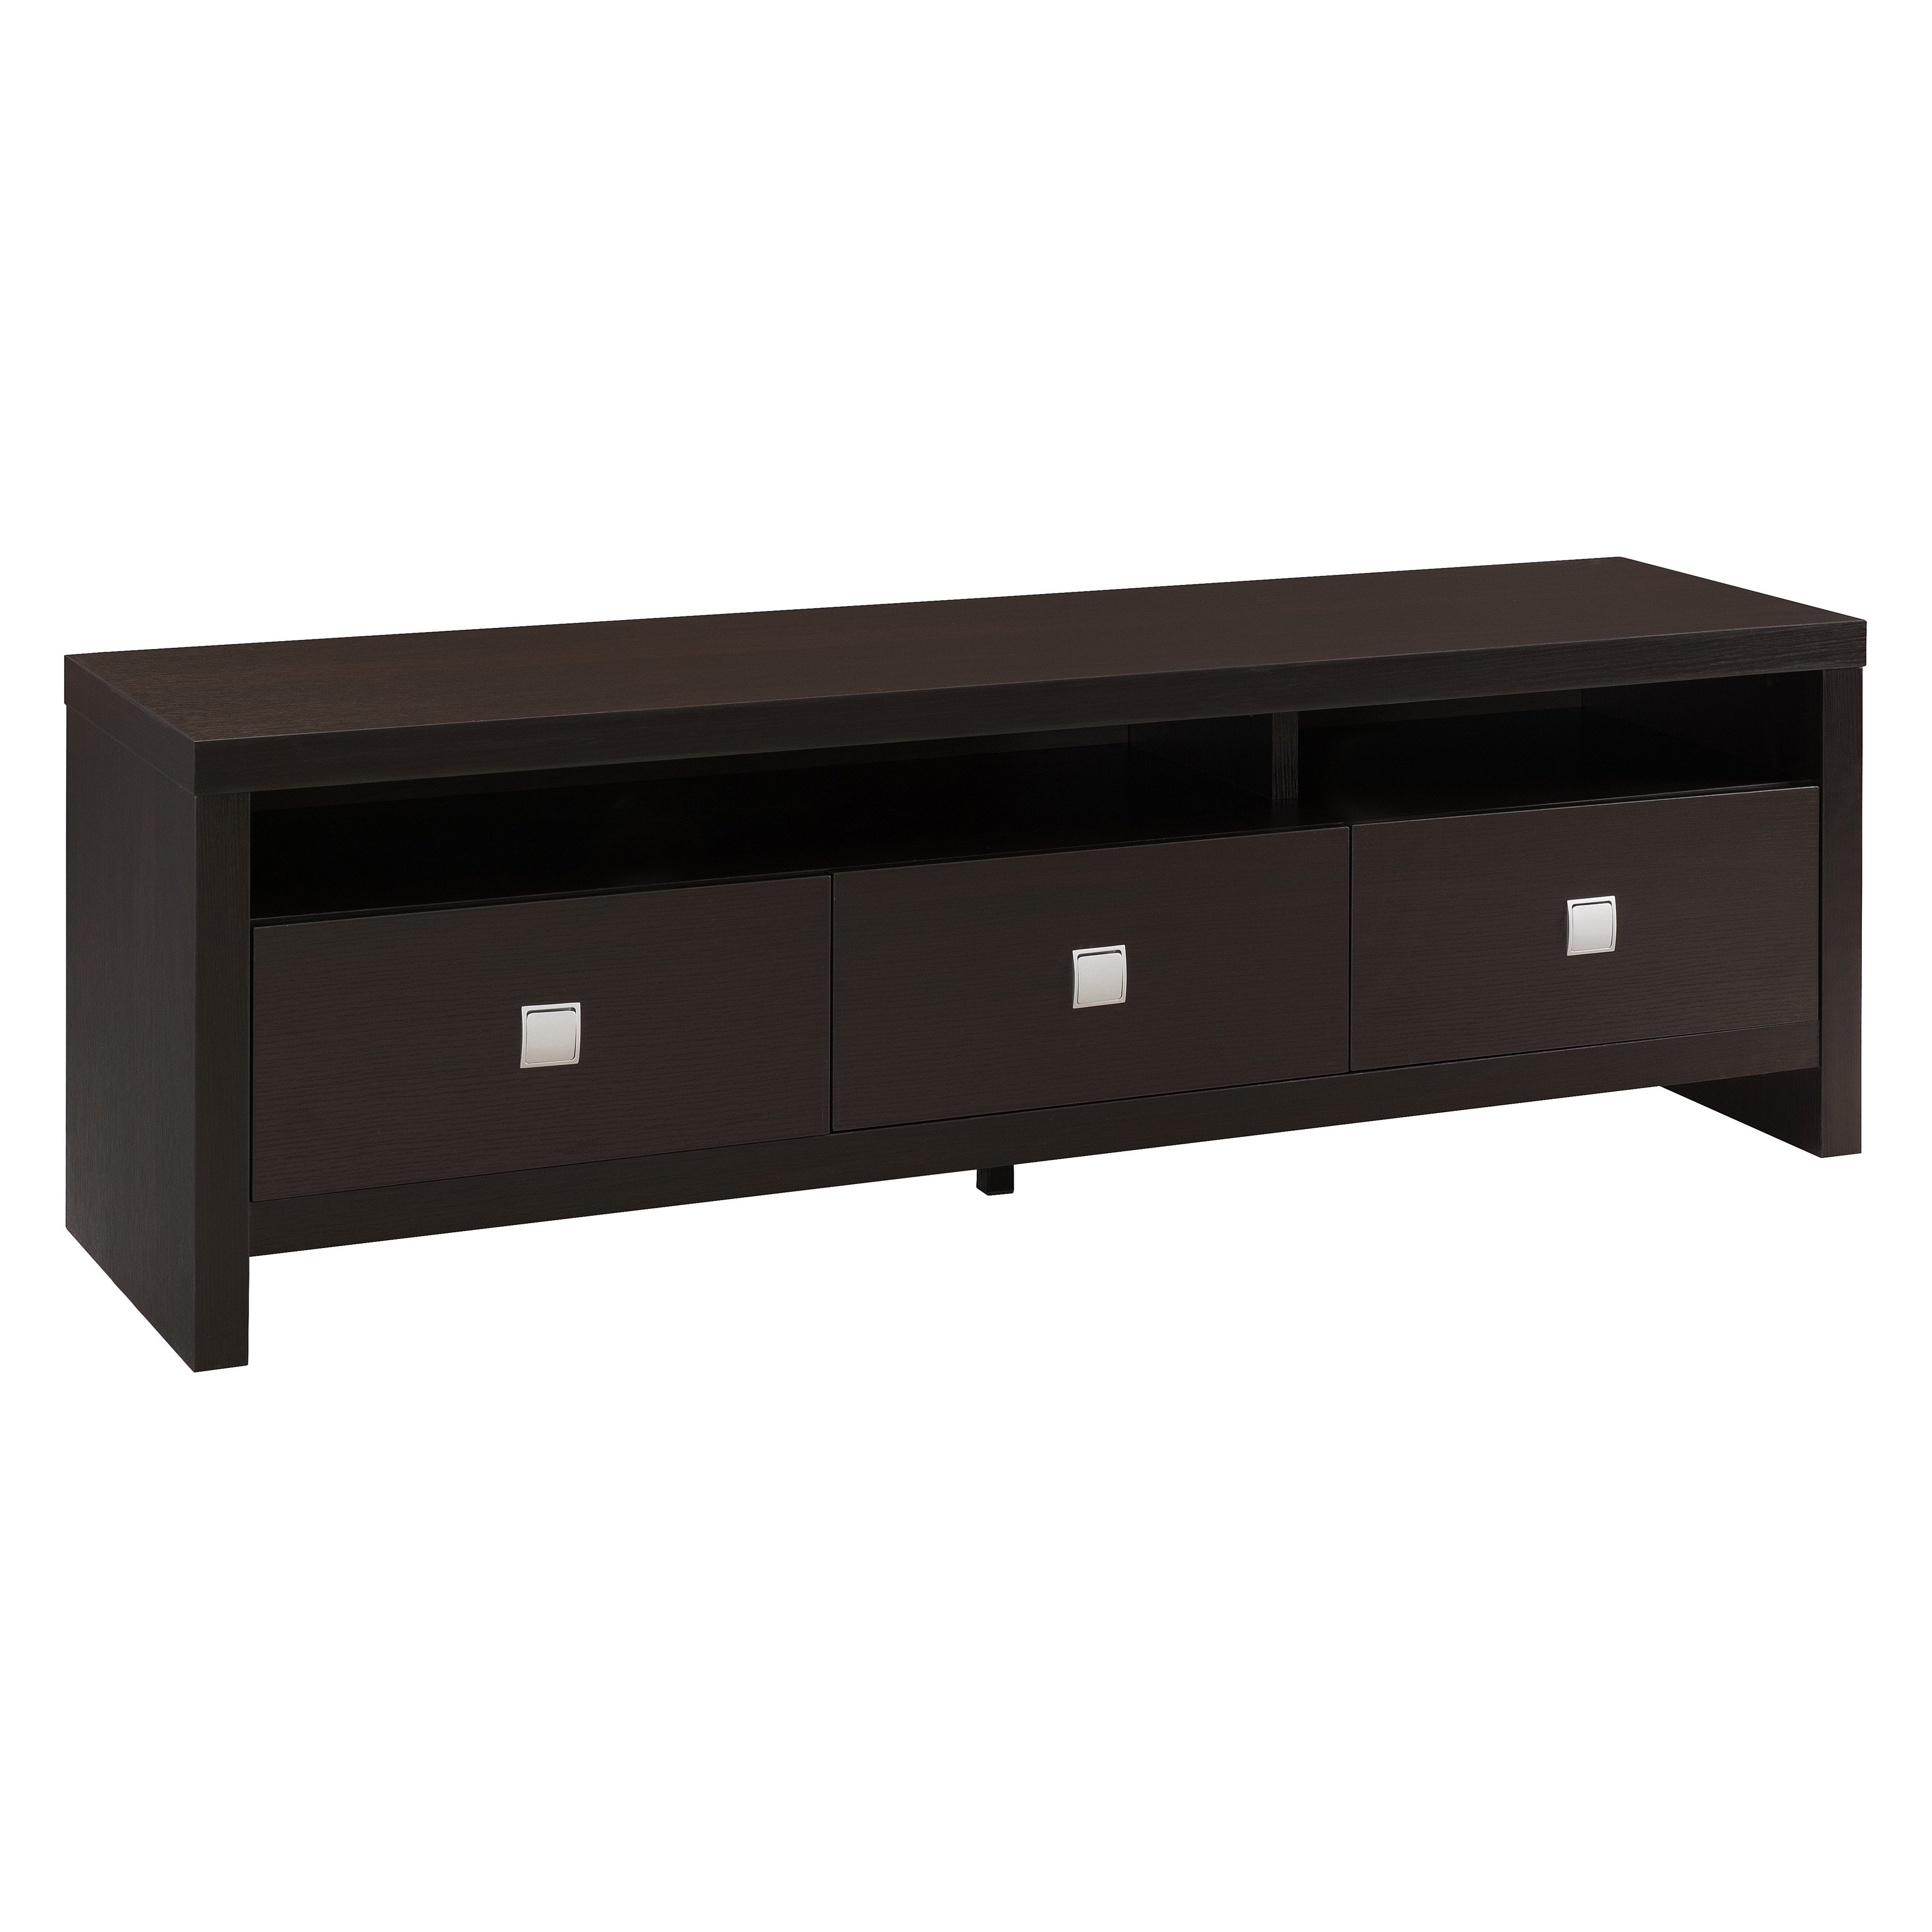 Furniture of America 3 Drawer TV Stand Walmart